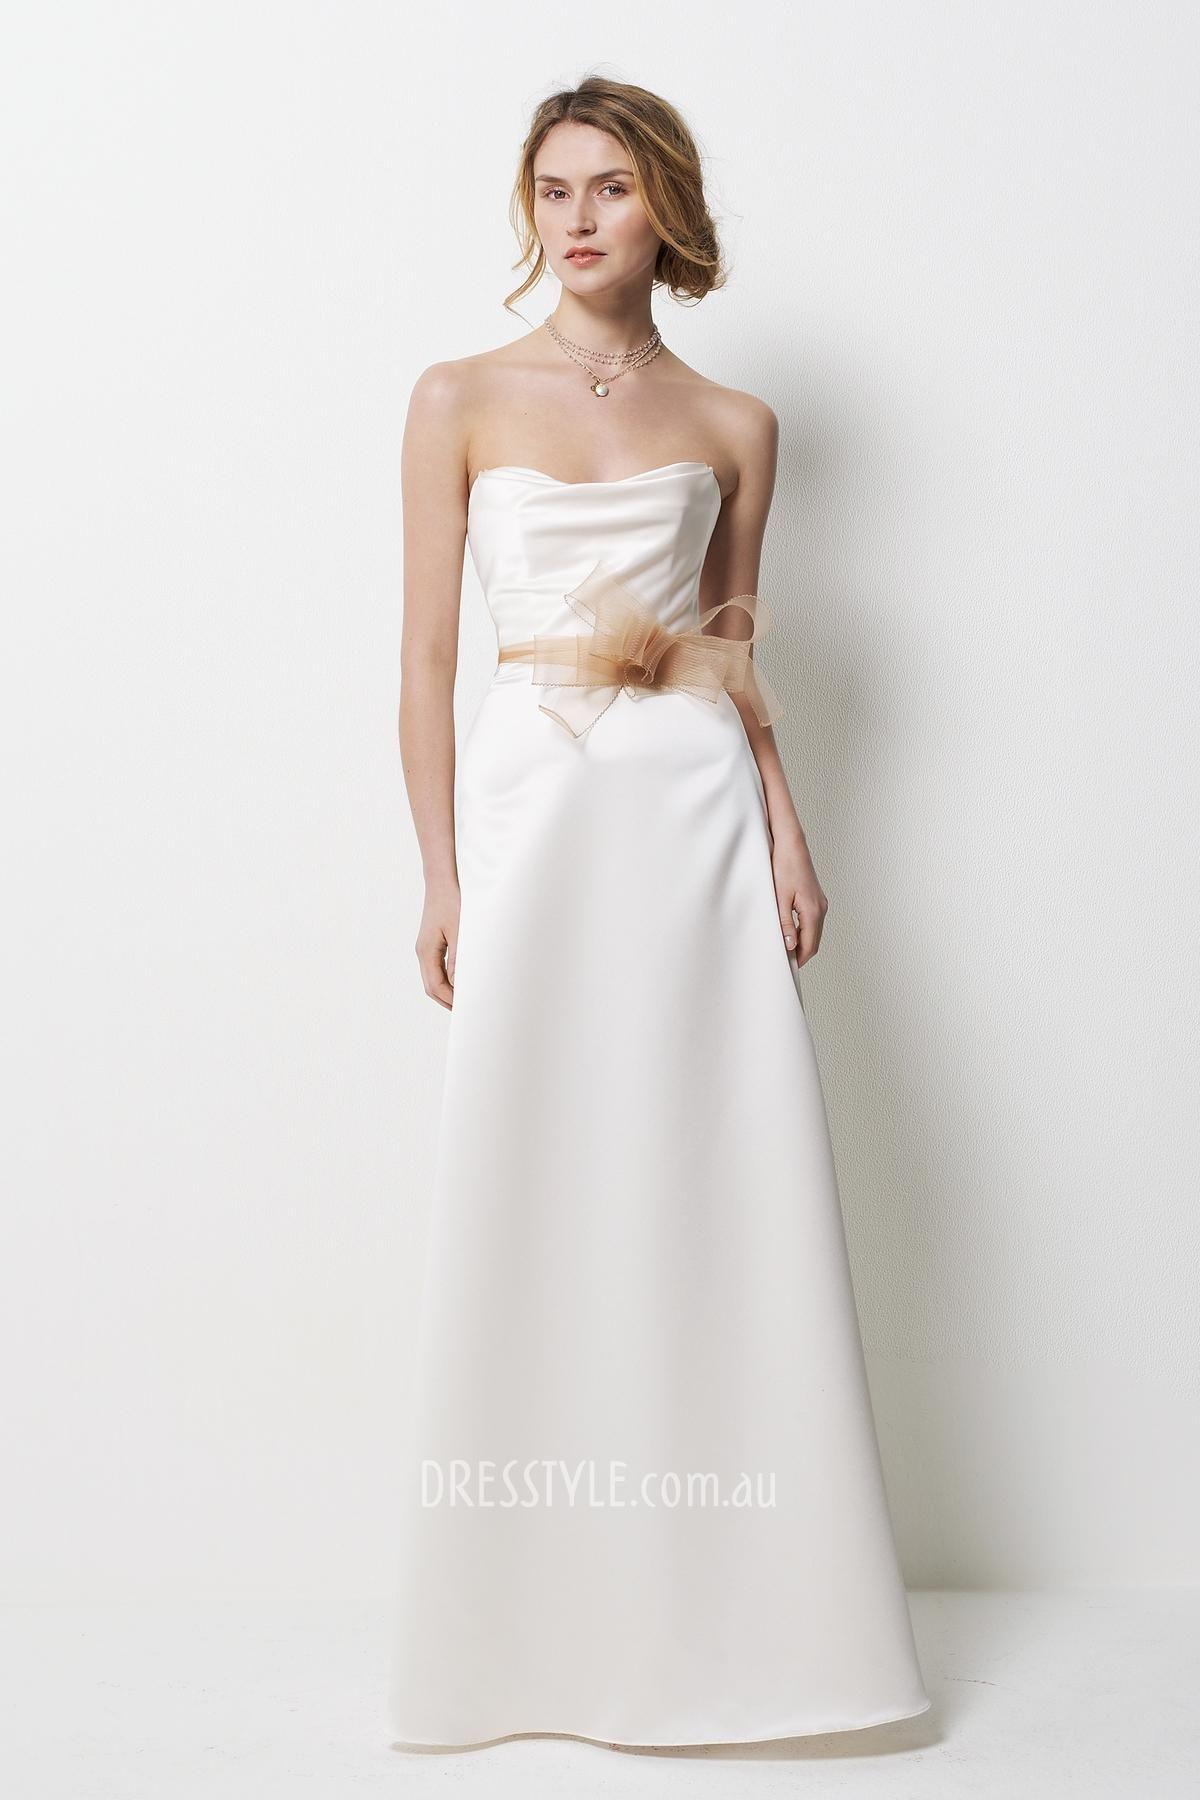 Simple White Strapless A Line Floor Length Bridesmaid Dress With Bow Horse Hair Belt